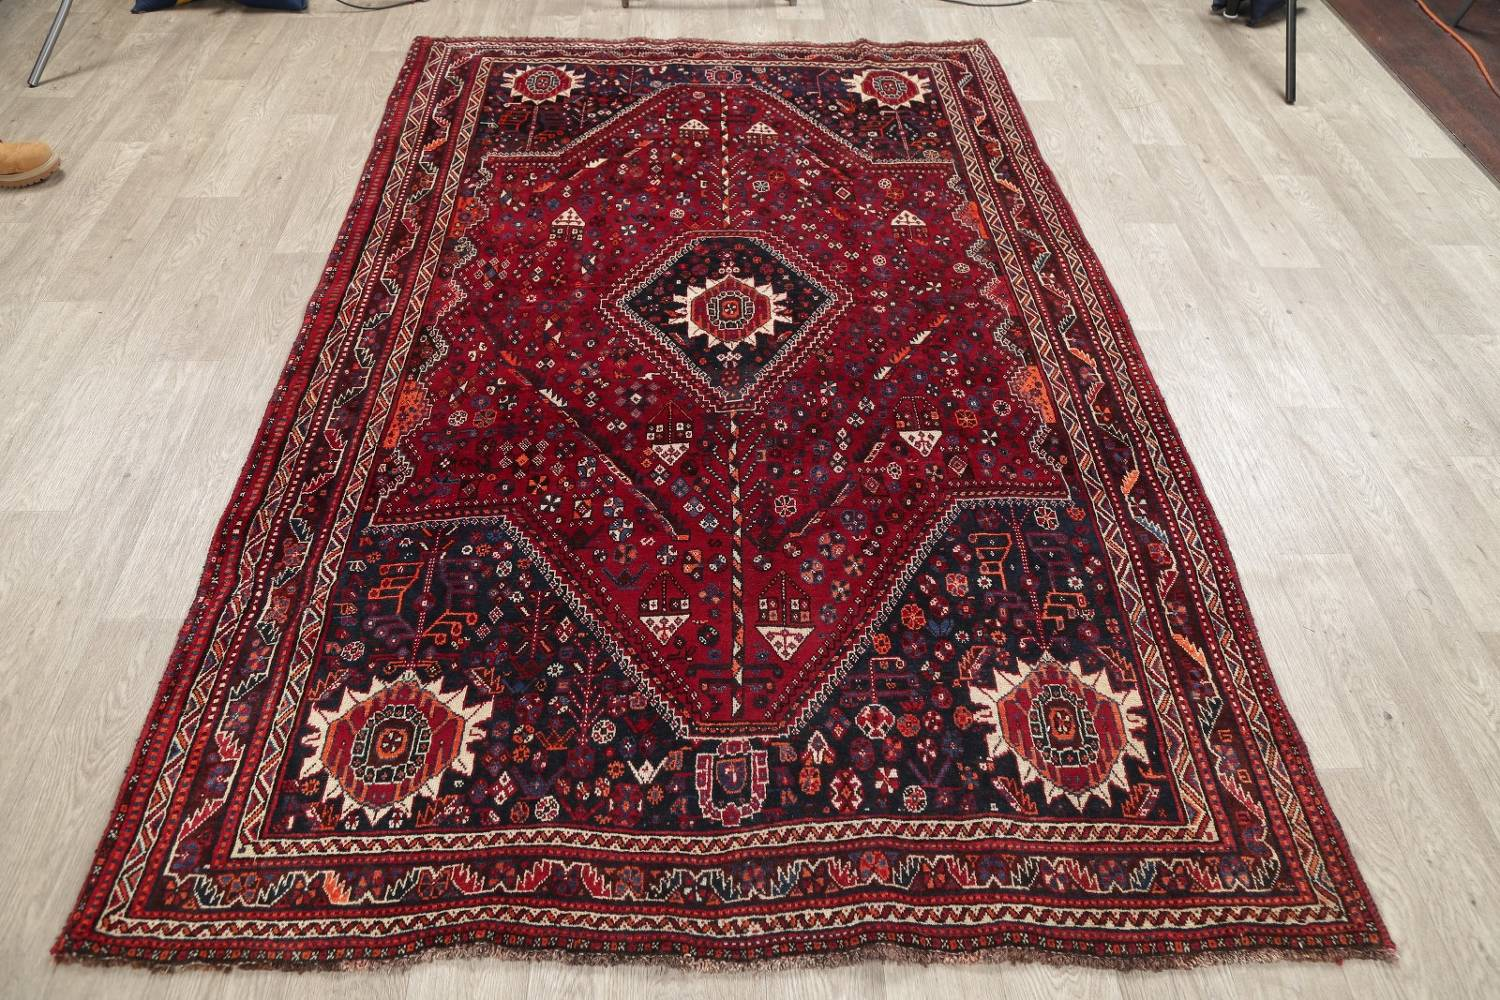 Antique Red Tribal Geometric Qashqai Persian Hand-Knotted 5x8 Wool Area Rug image 15